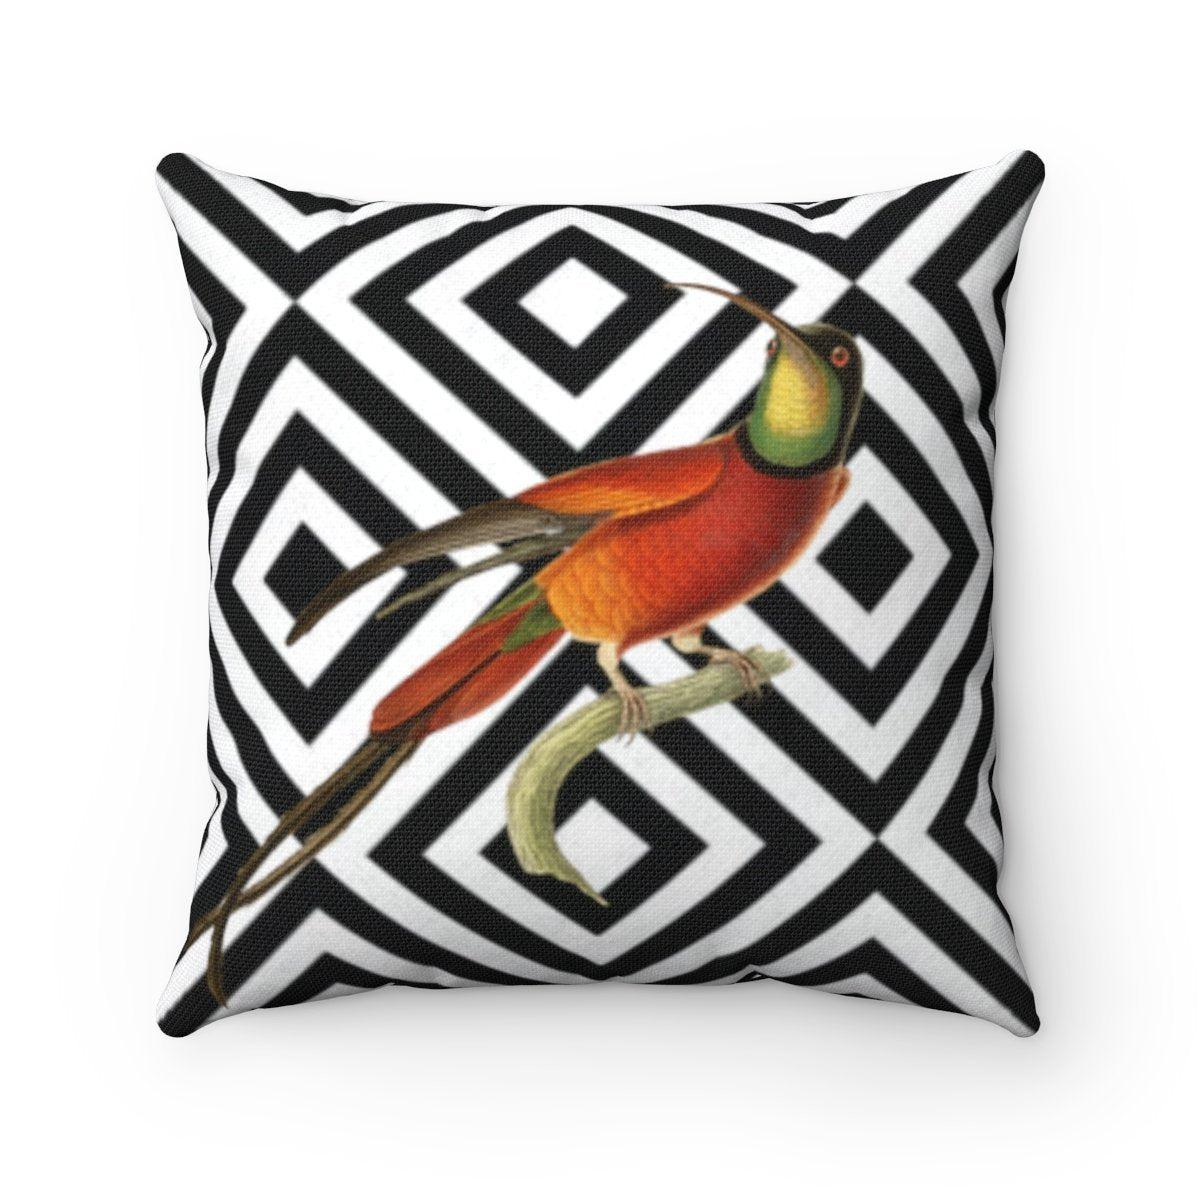 Luxury | humming bird abstract decorative cushion cover-Home Decor-Maison d'Elite-14x14-Très Elite